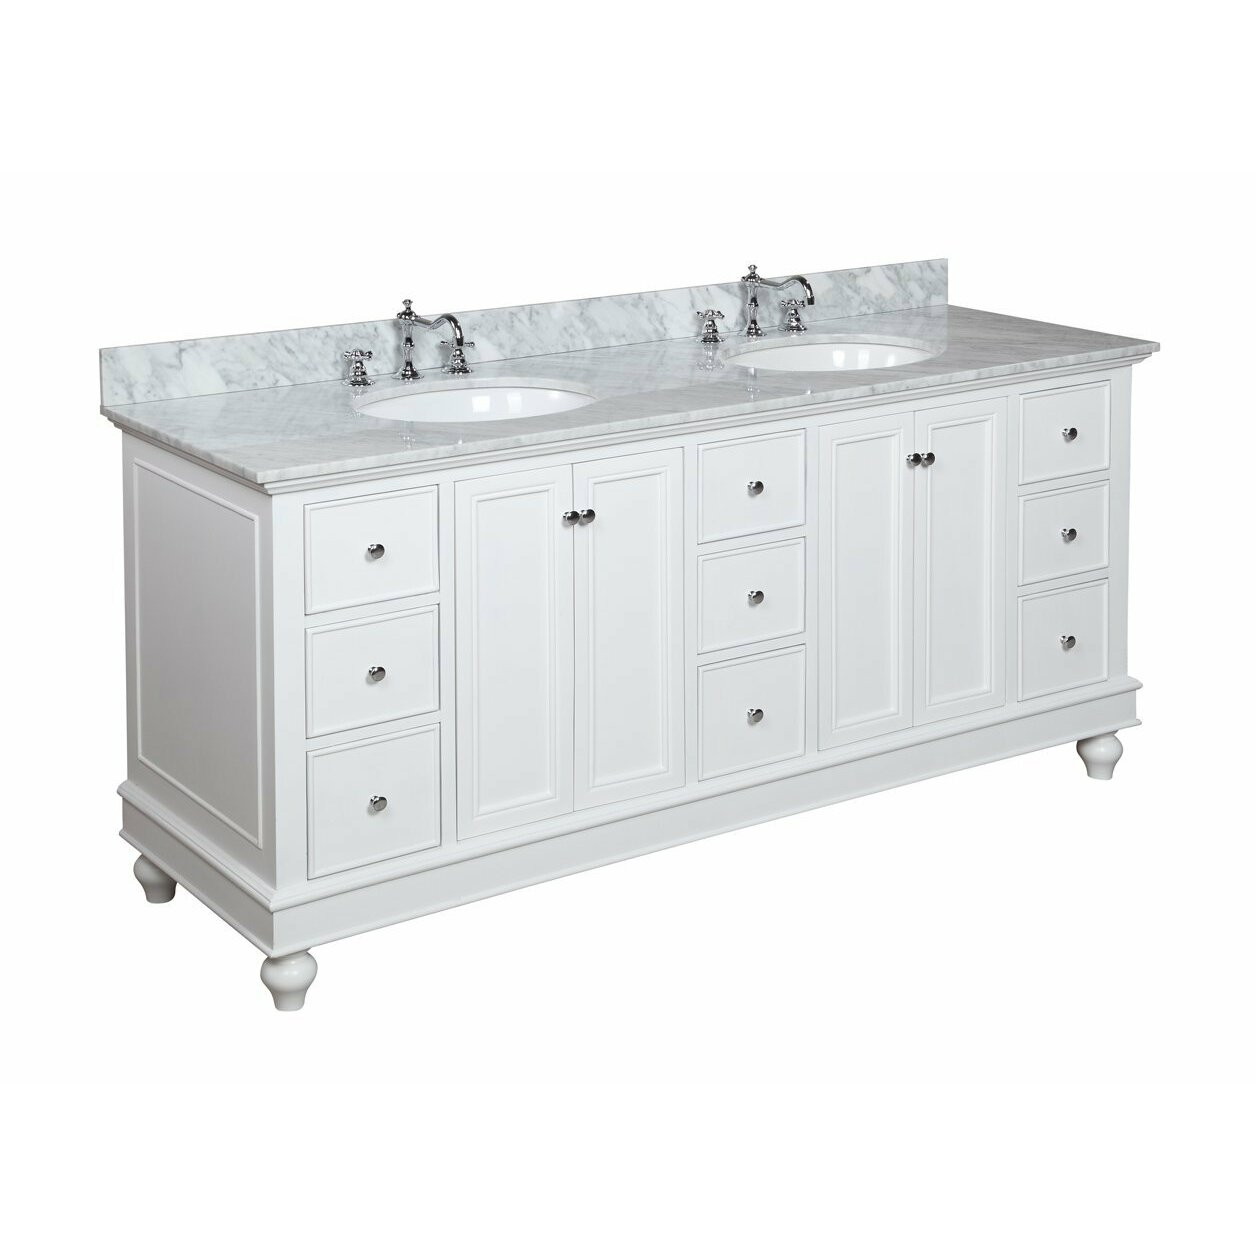 Kbc bella 72 double bathroom vanity set reviews wayfair for Bath and vanity set